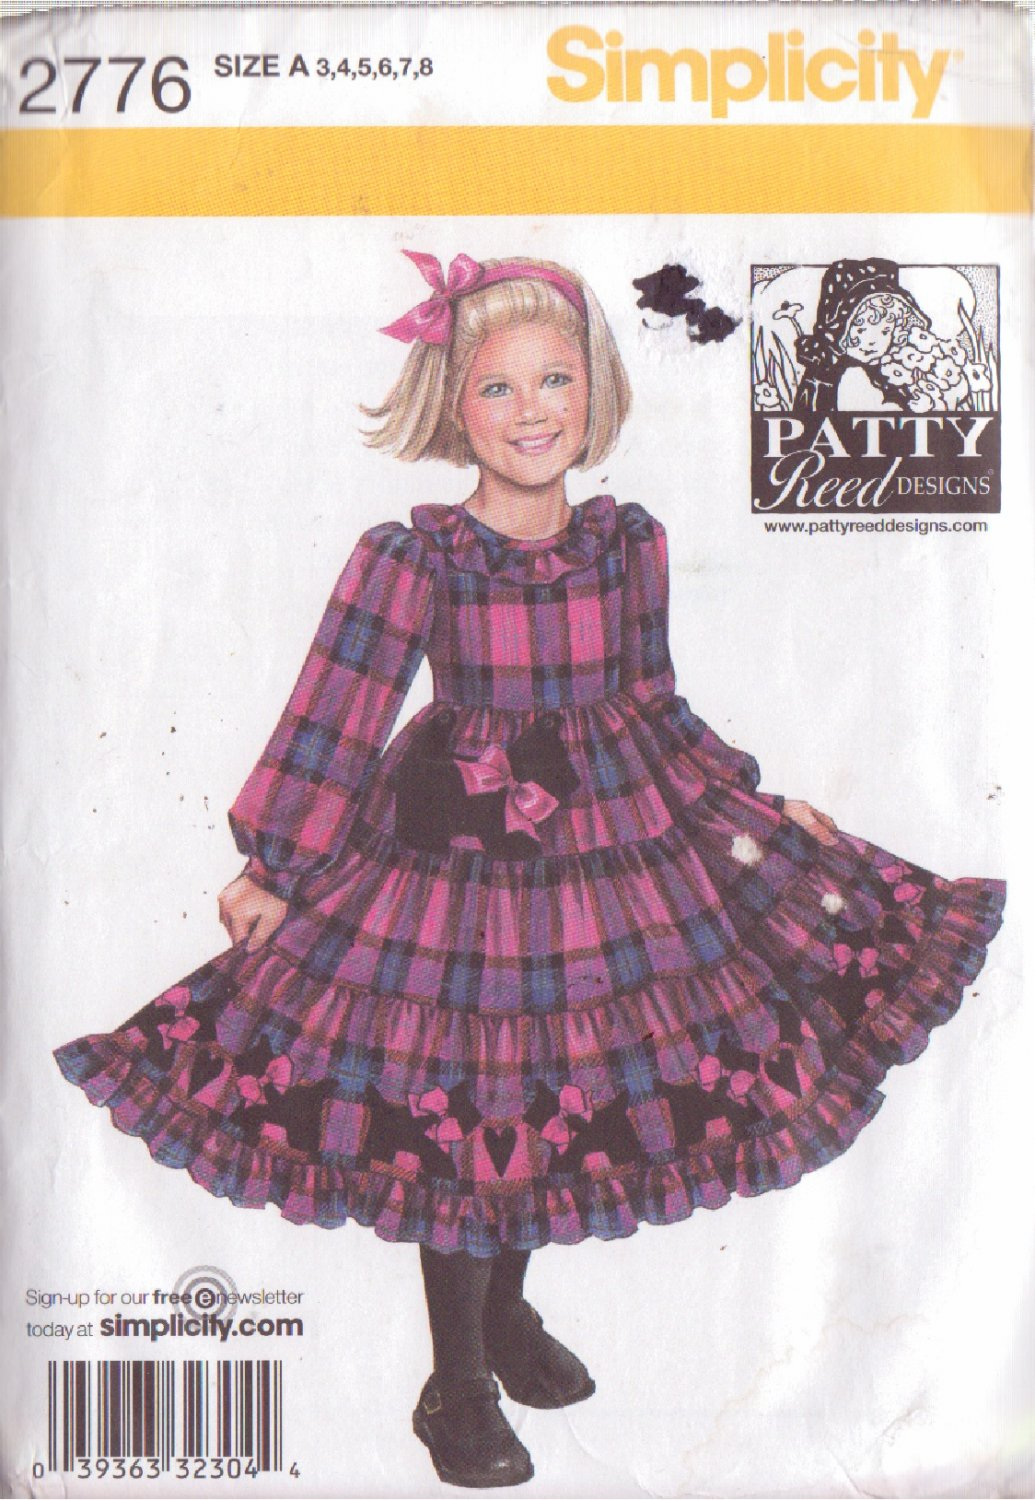 SIMPLICITY PATTERN 2776 GIRL�S PATTY REED DESIGN DRESS SIZES 3-8